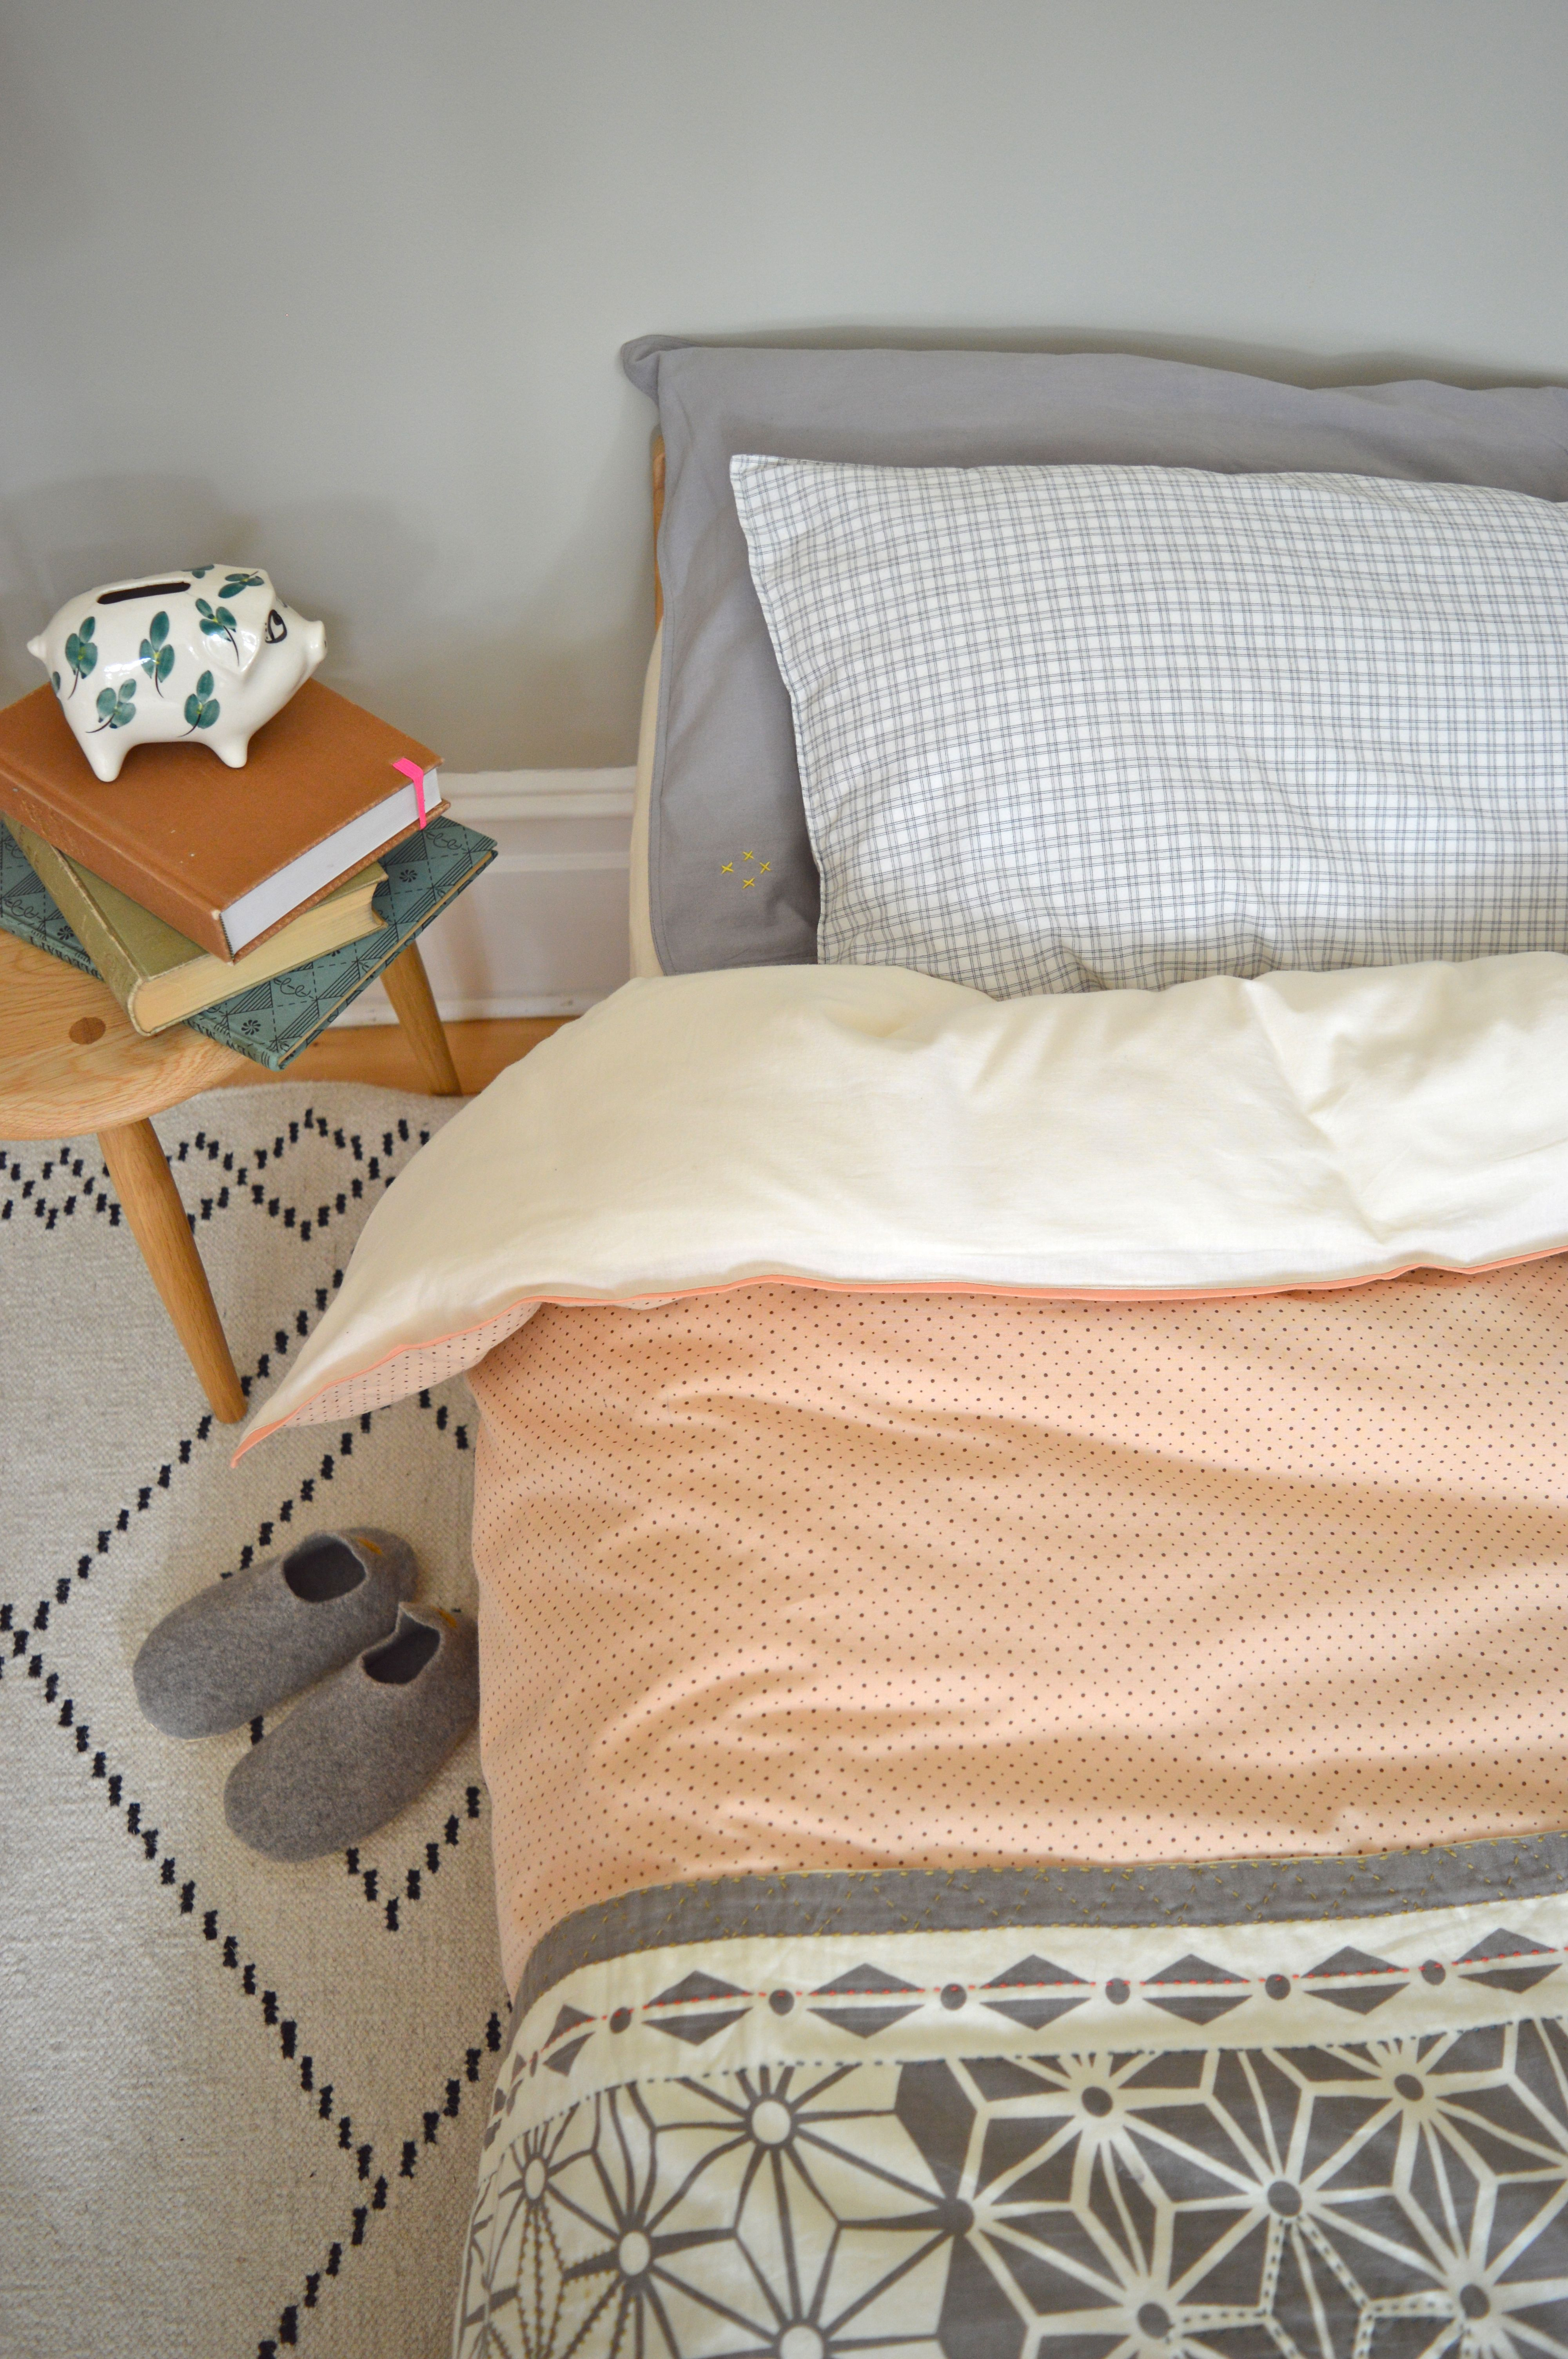 Camomile london's trade mark mix and match kids bedding